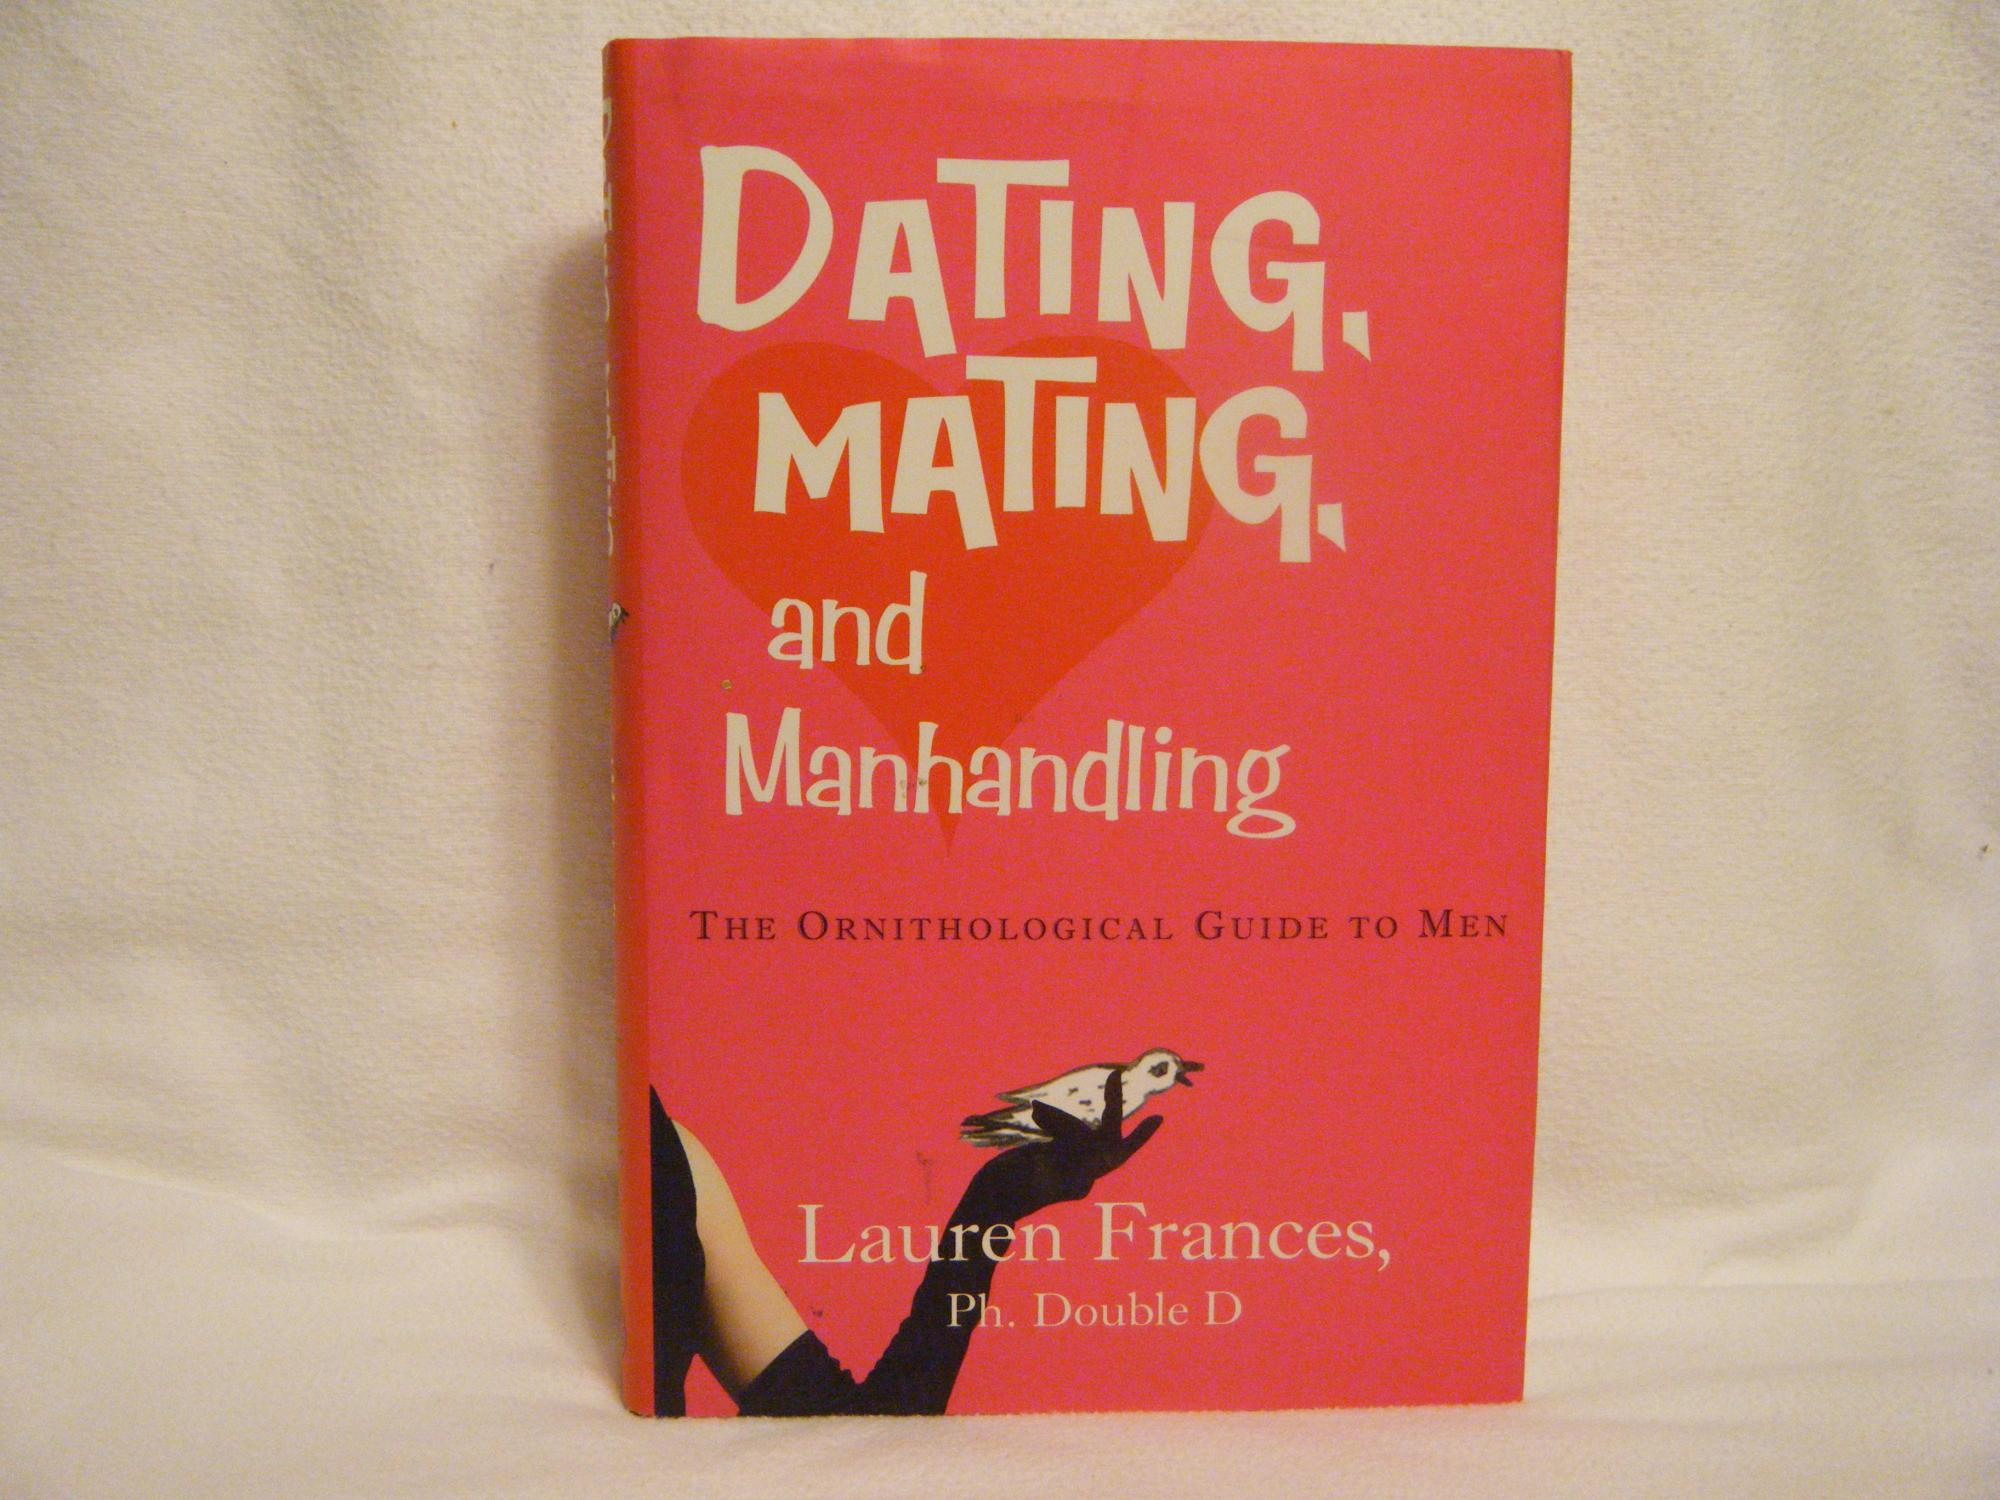 from Graham research on dating and mating